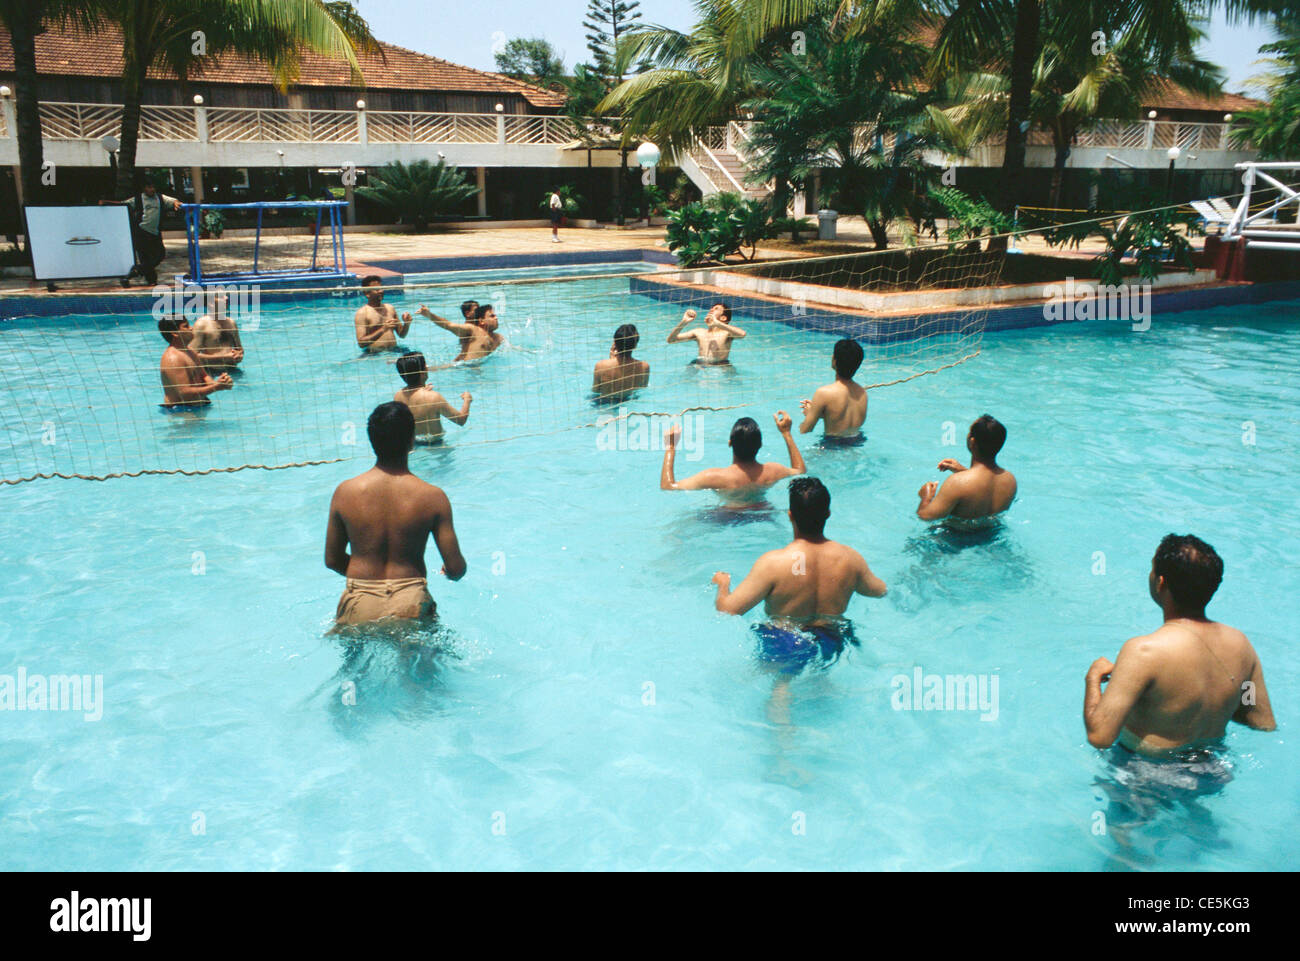 Men Playing Volley Ball In Swimming Pool Goa India Stock Photo Royalty Free Image 43151027